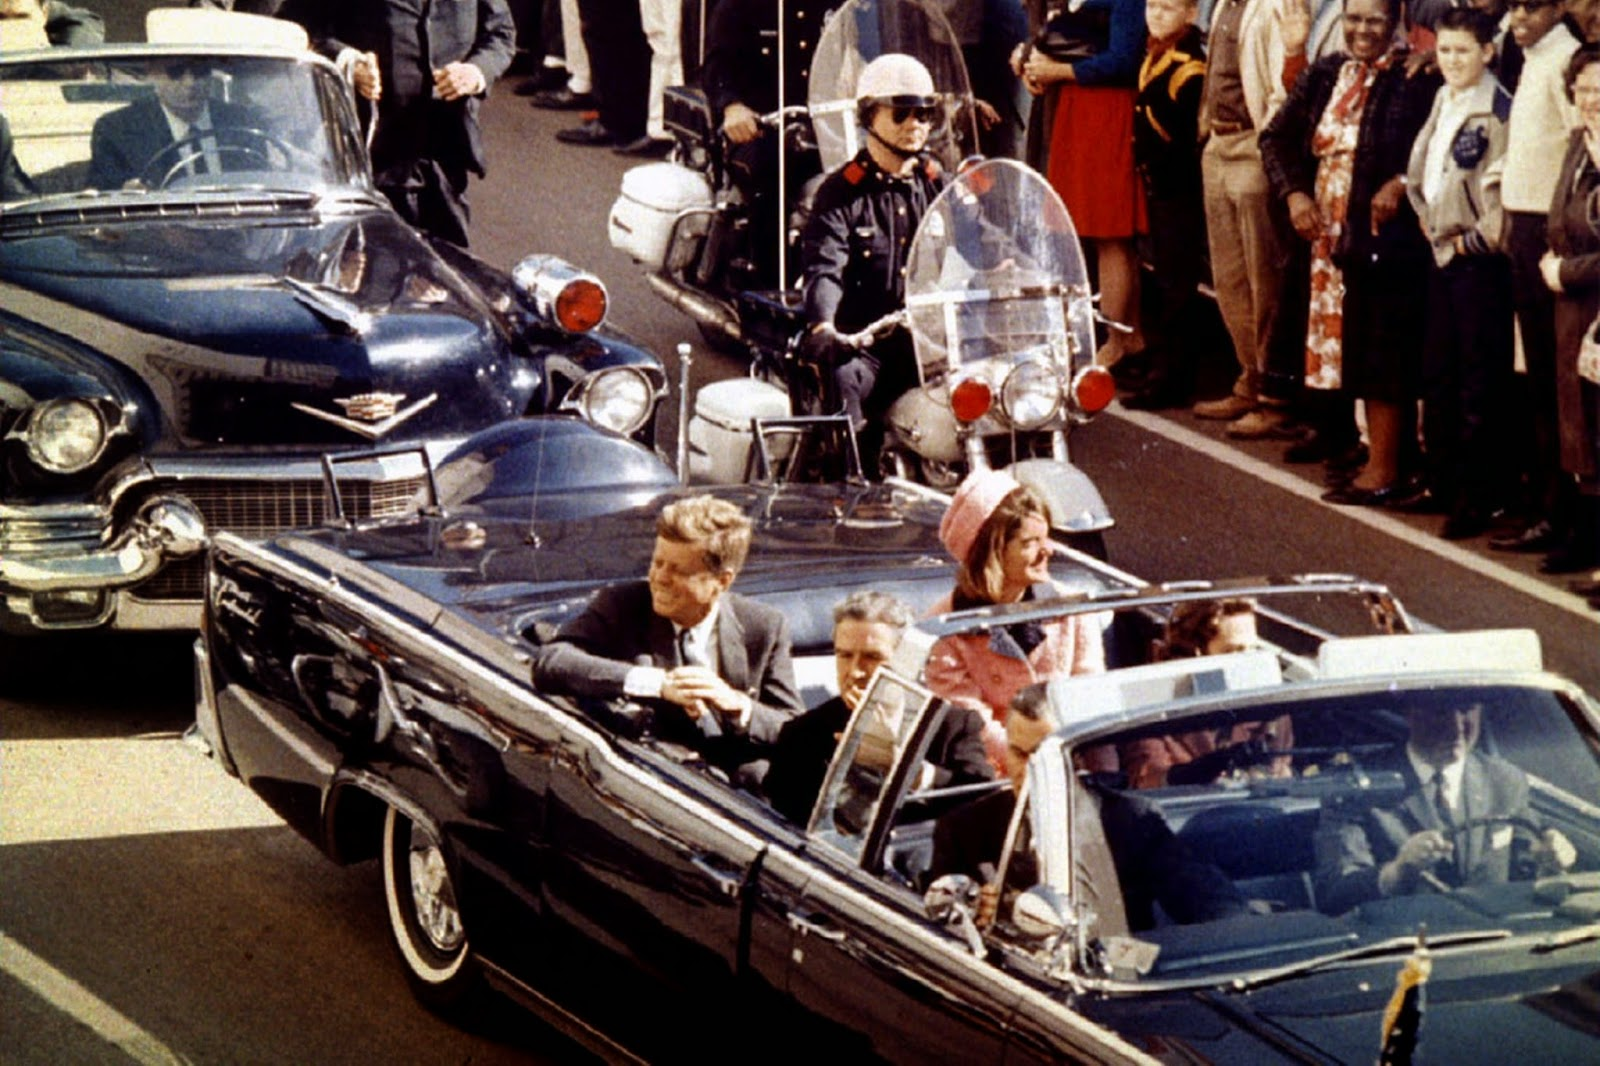 john f kennedy s assassination theories But when it comes to the assassination of president john f kennedy,  end to the swirling conspiracy theories about the president's murder yet the theories.